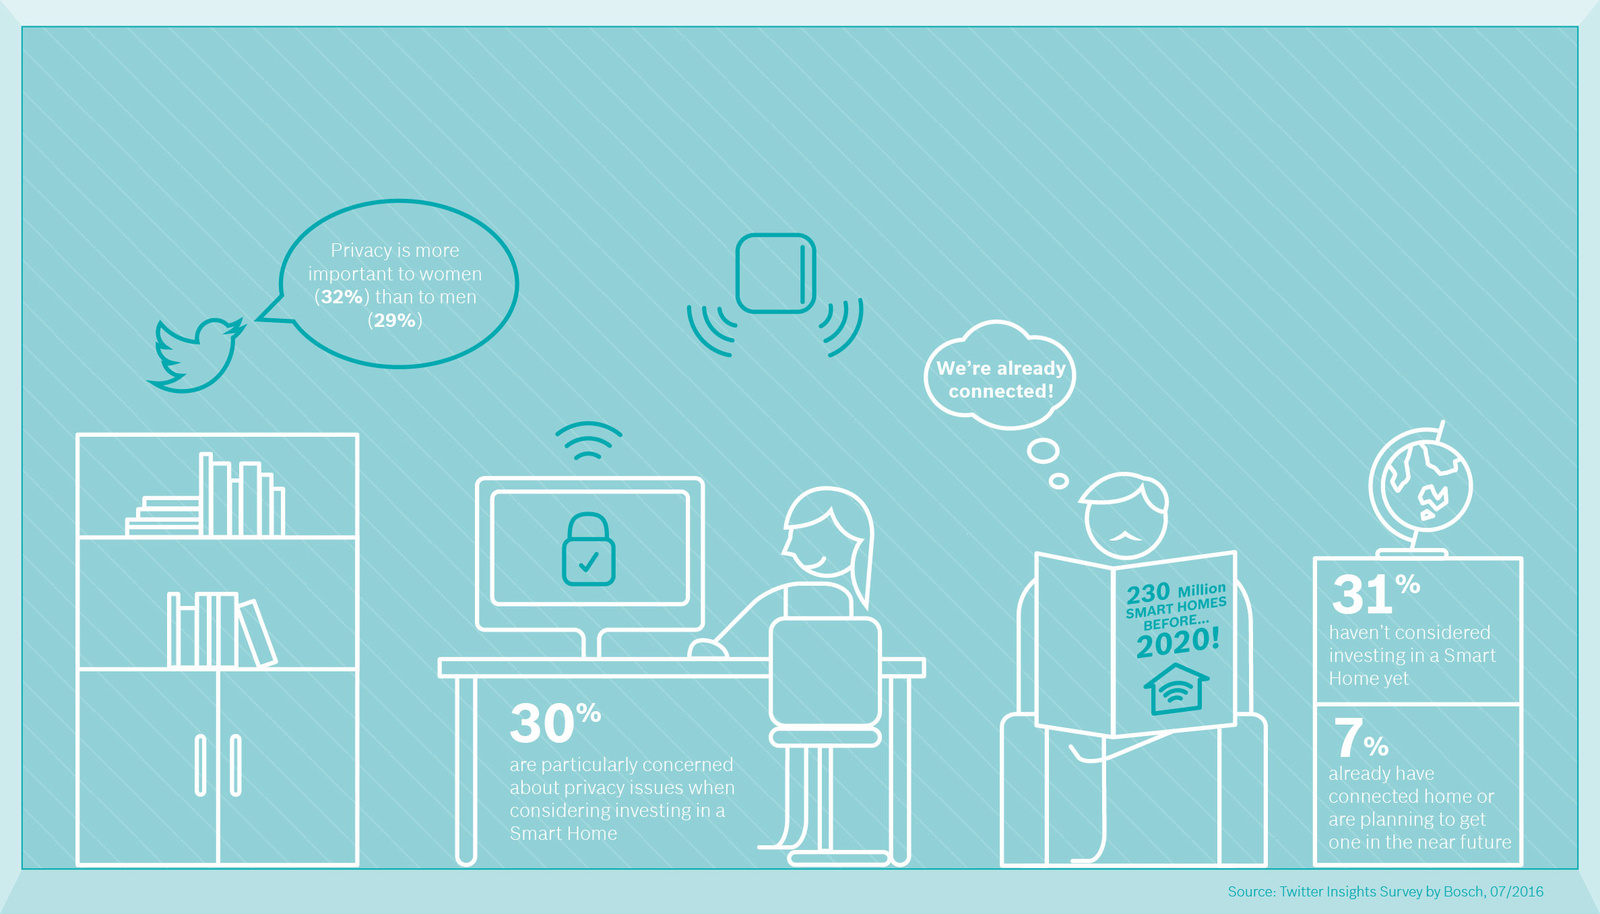 Infographic 3_Bosch Smart Home Survey